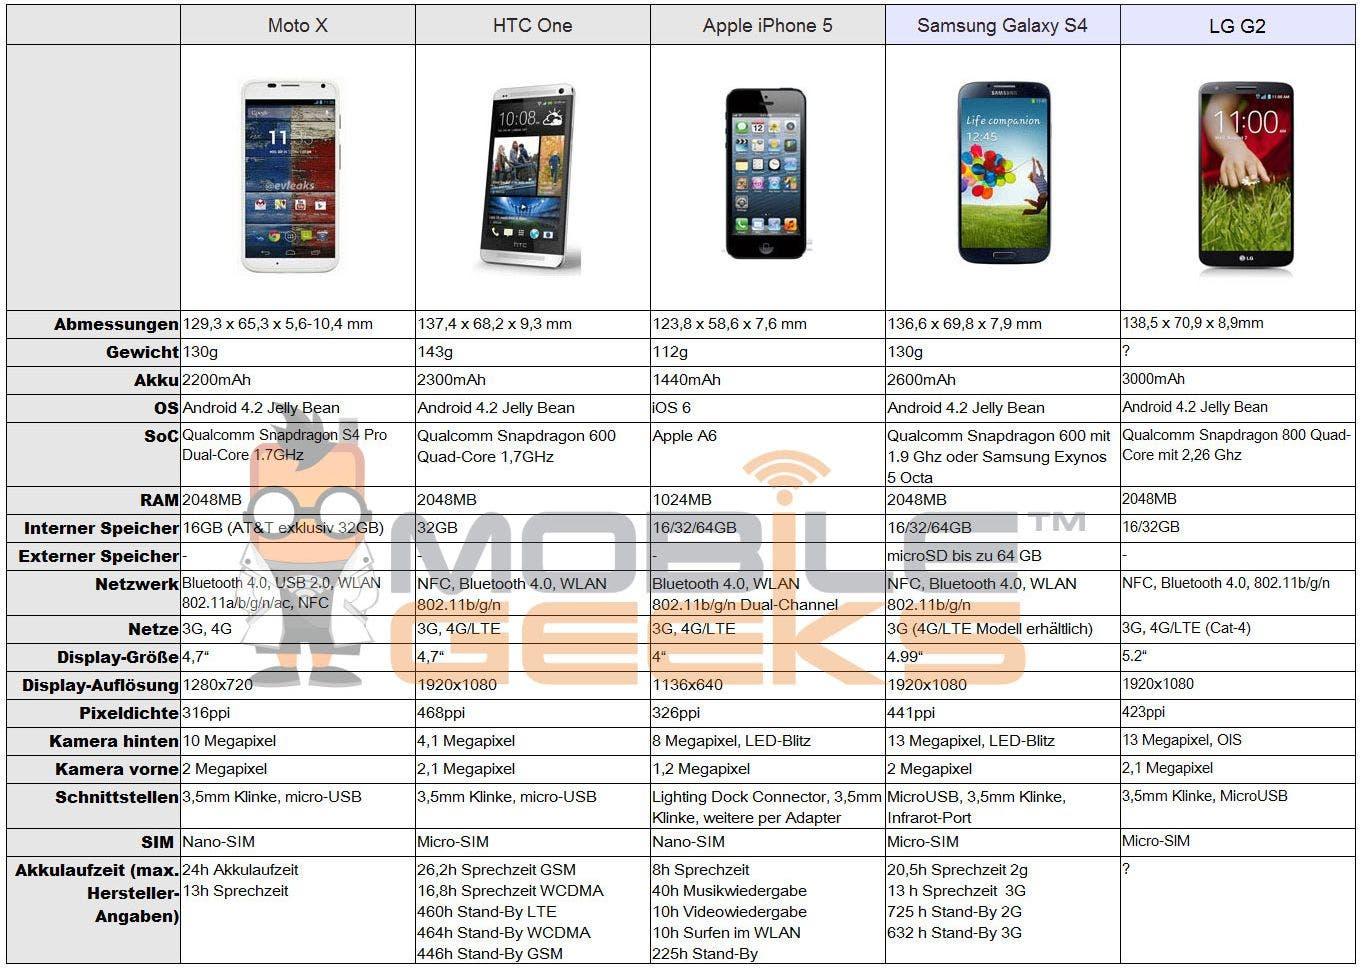 LG-G2-vs-Moto-X-vs-iPhone-5-vs-HTC-One-vs-Galaxy-S4 02